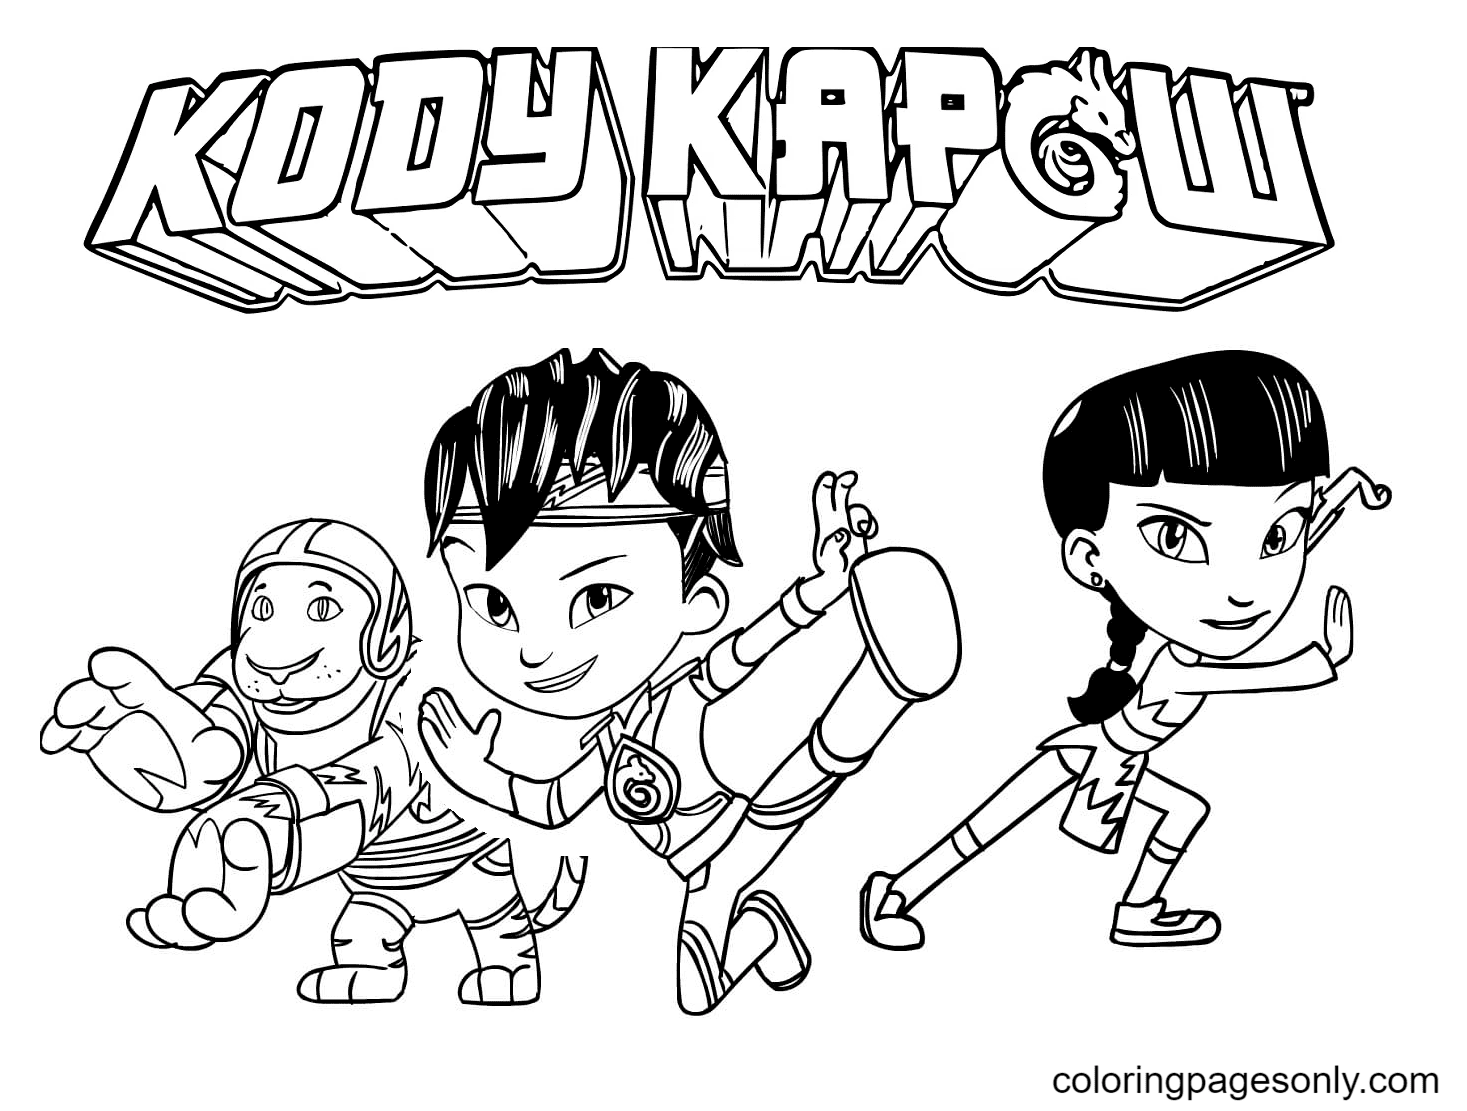 Kody Kapow and Friends Coloring Page